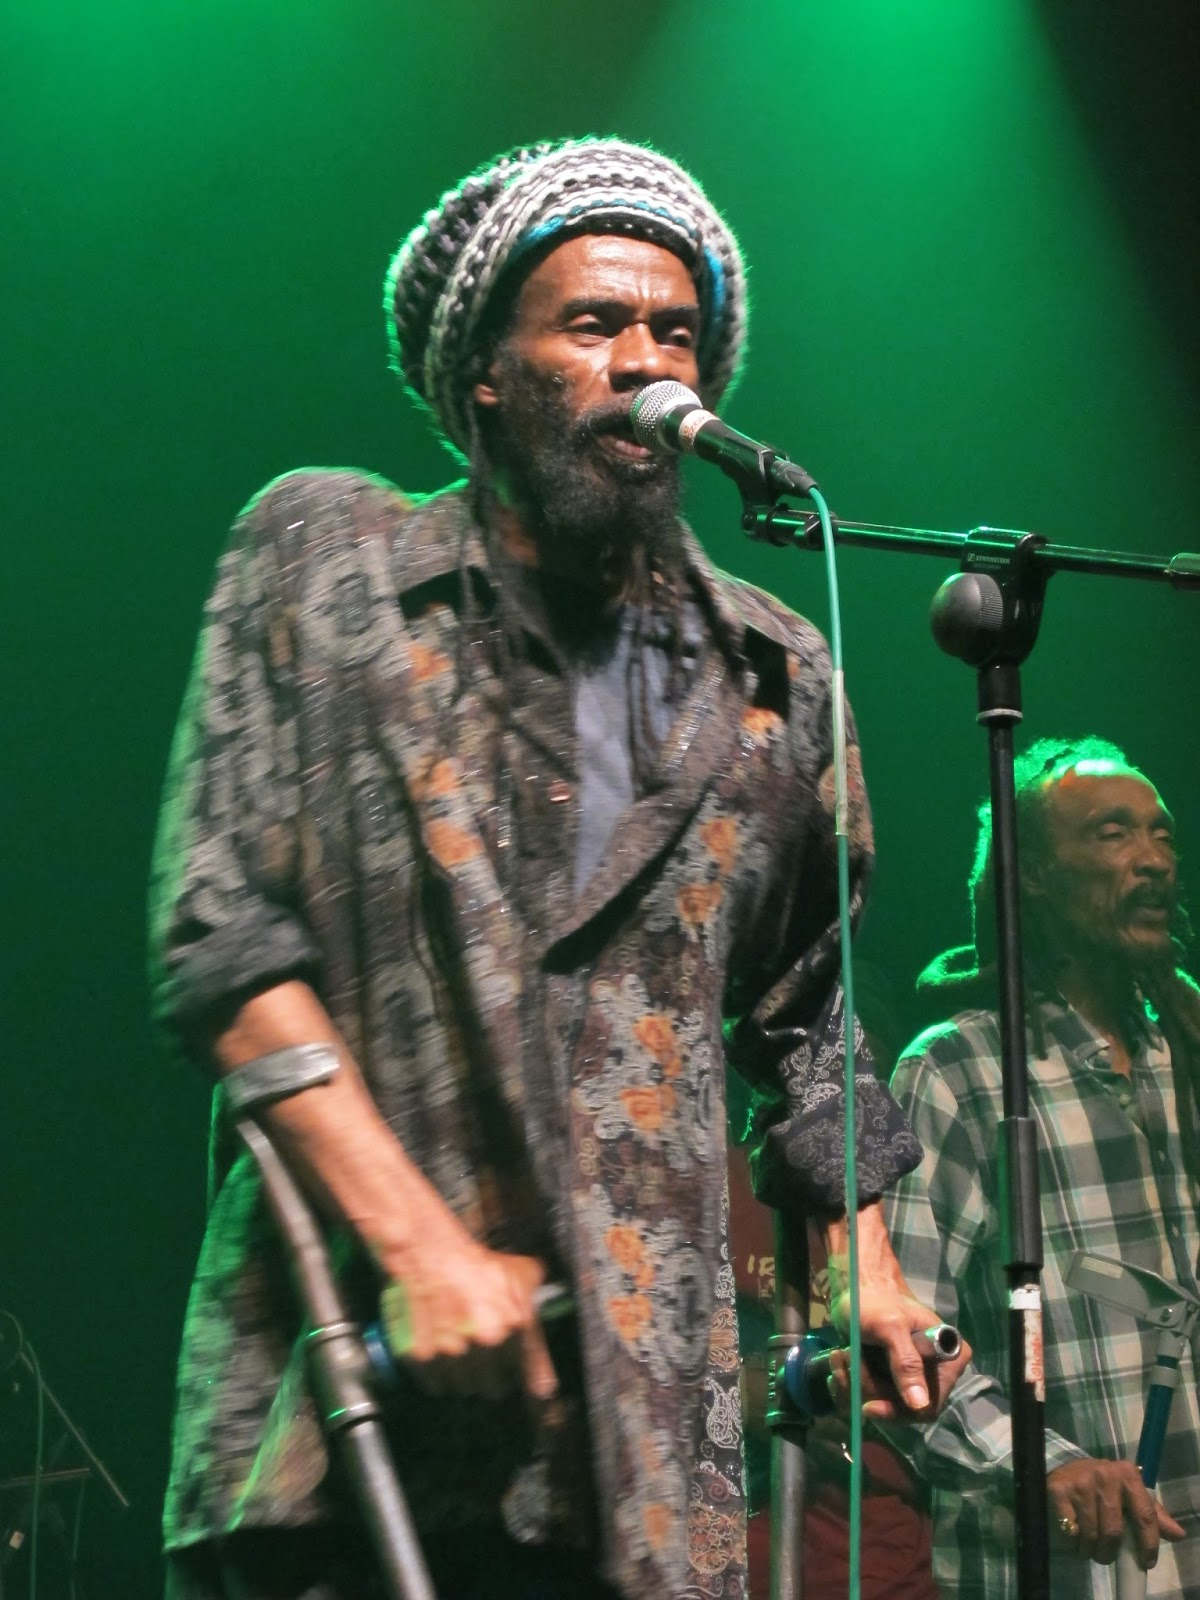 israel vibration-brixton-records